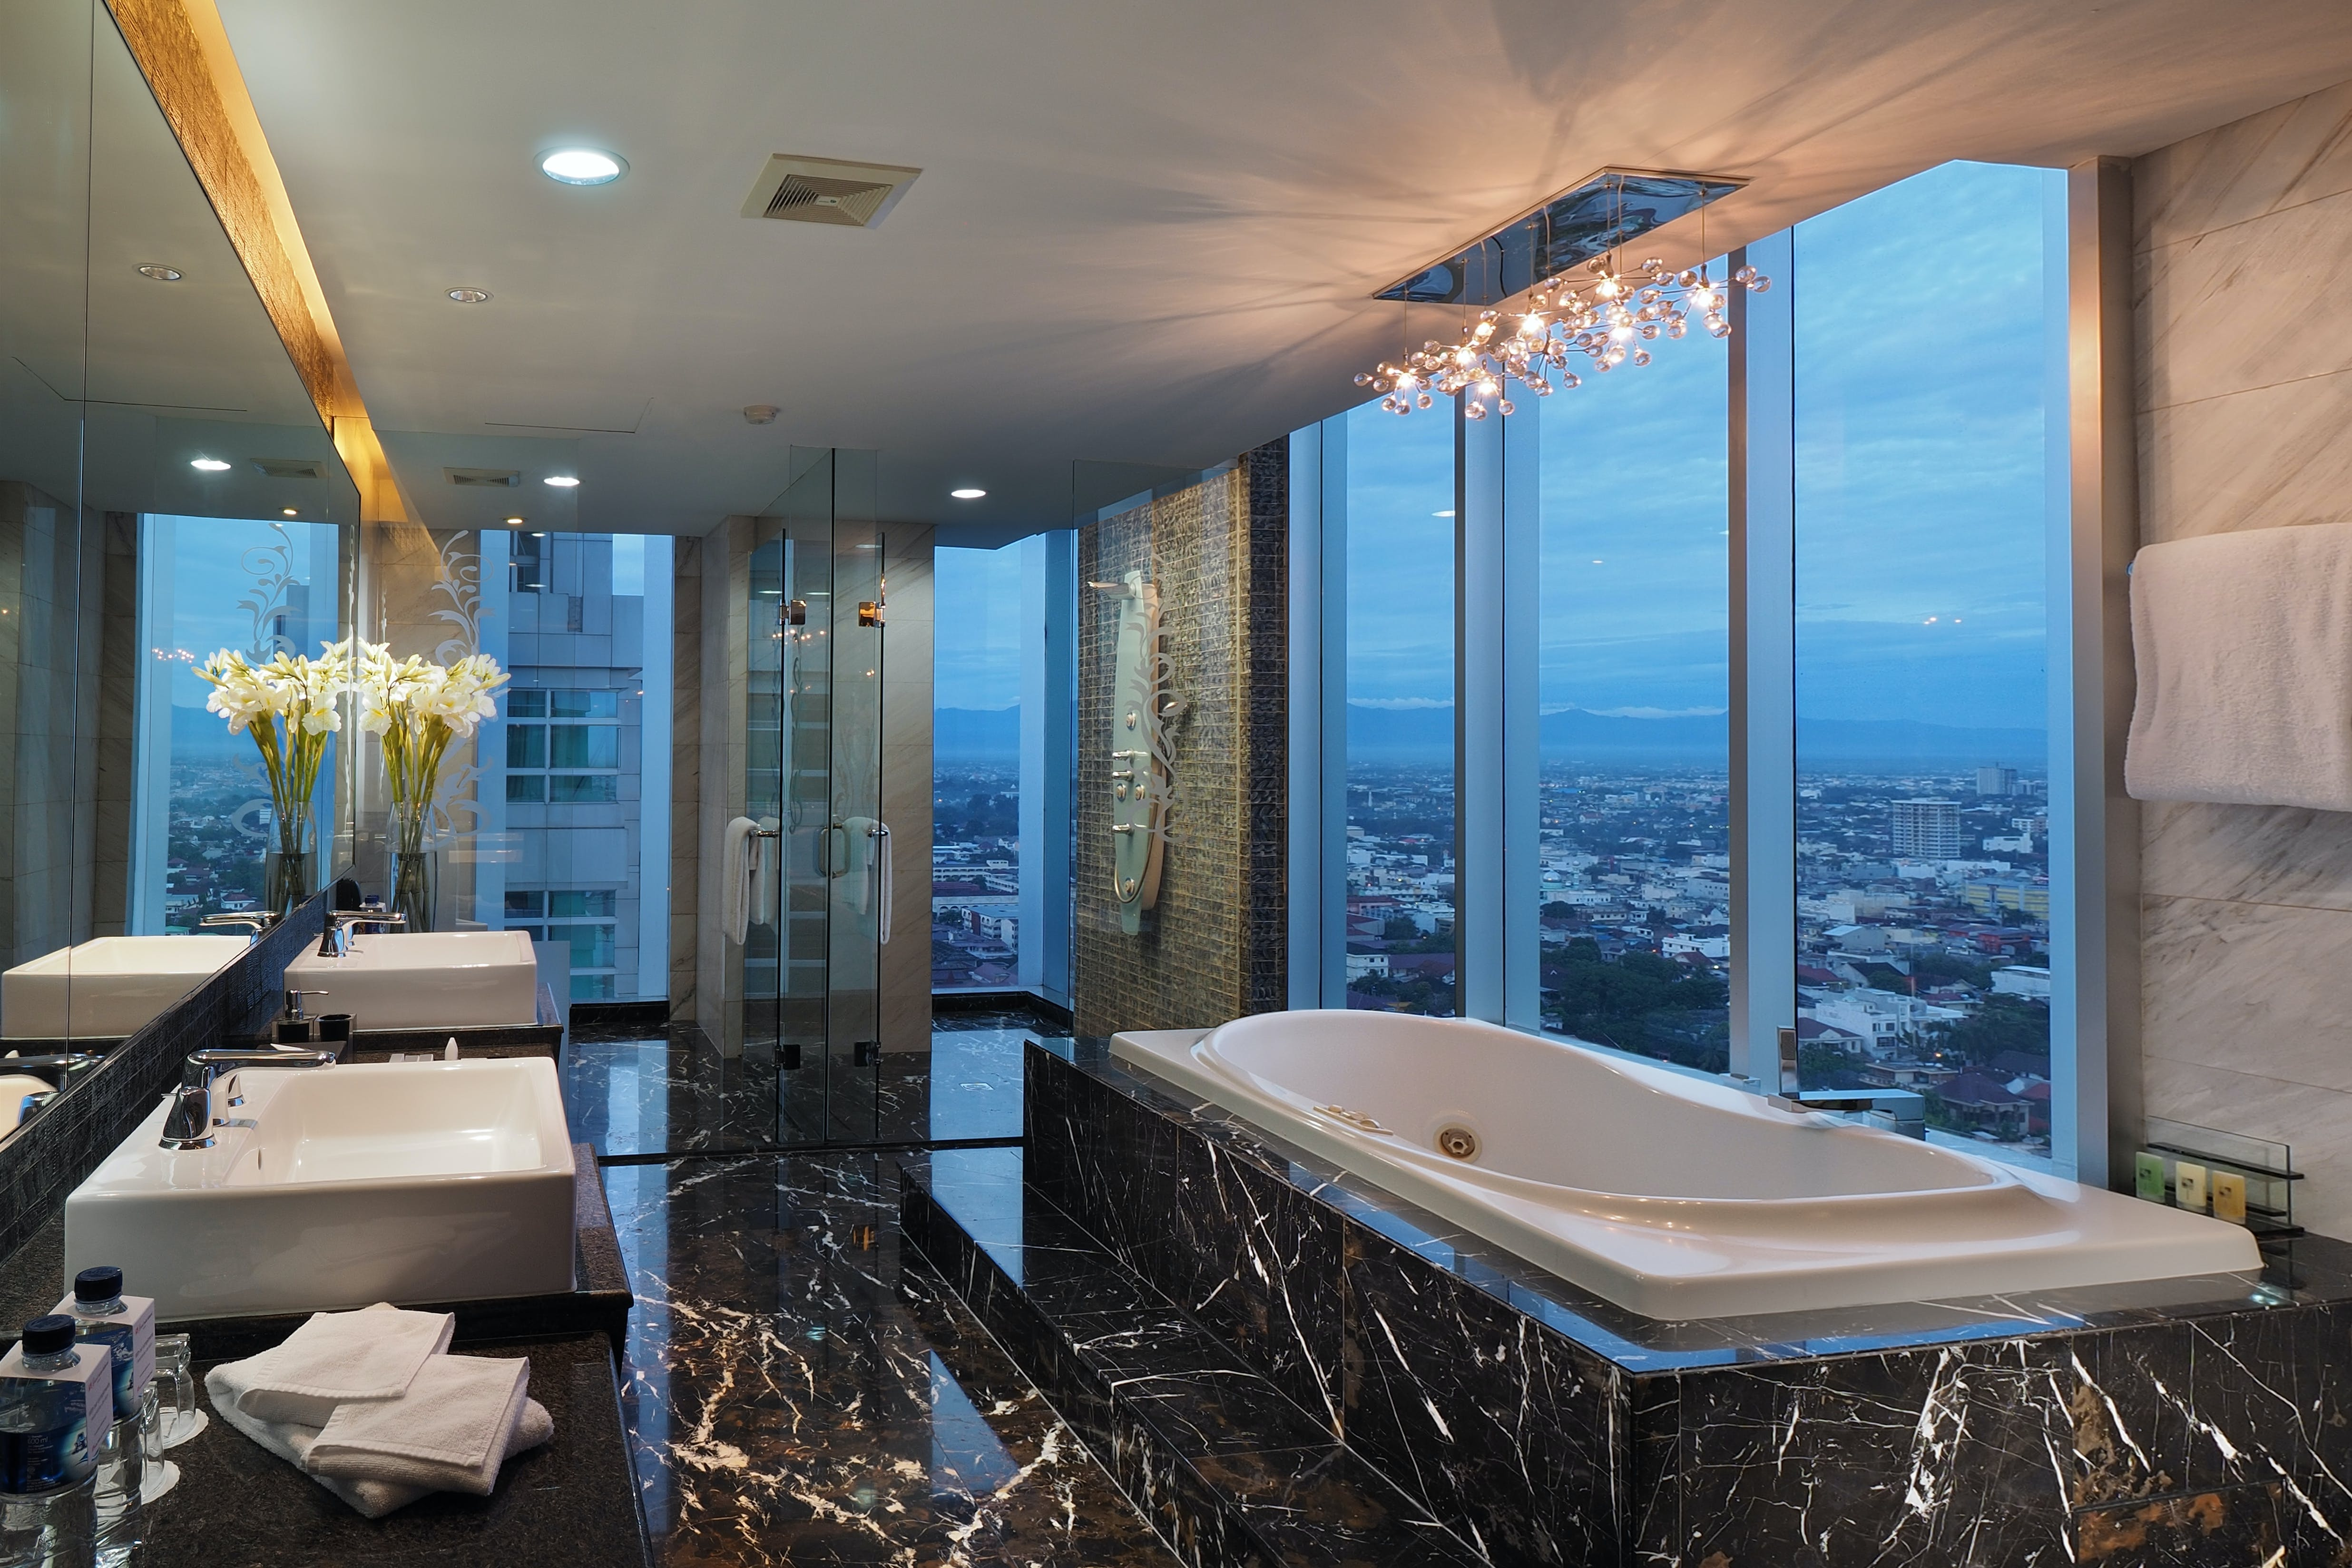 Presidential Suite bathroom decorative details with Medan city view